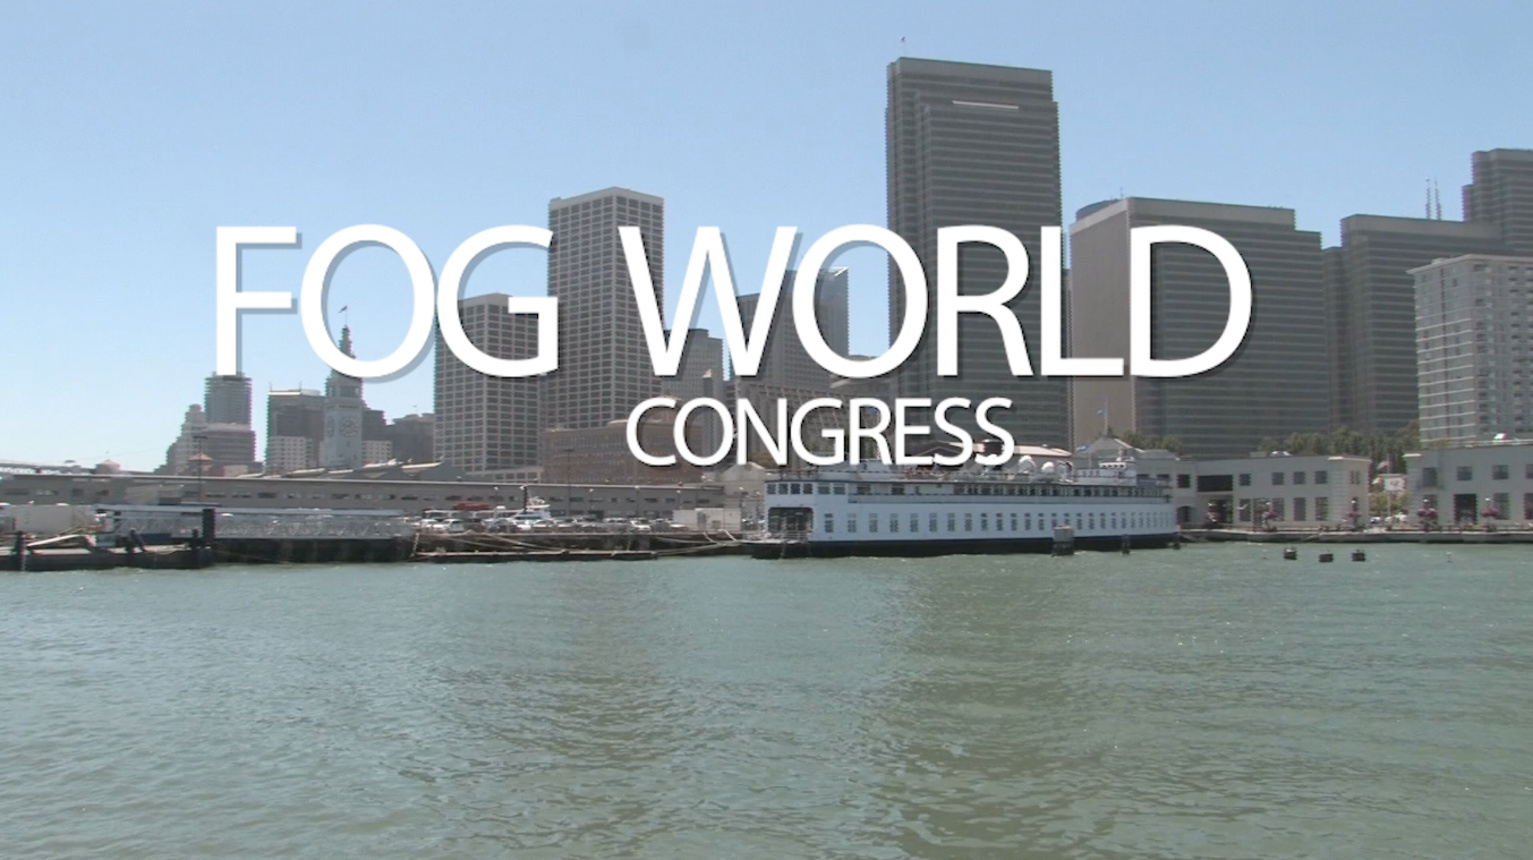 Fog World Congress 2018 - Save the Date!